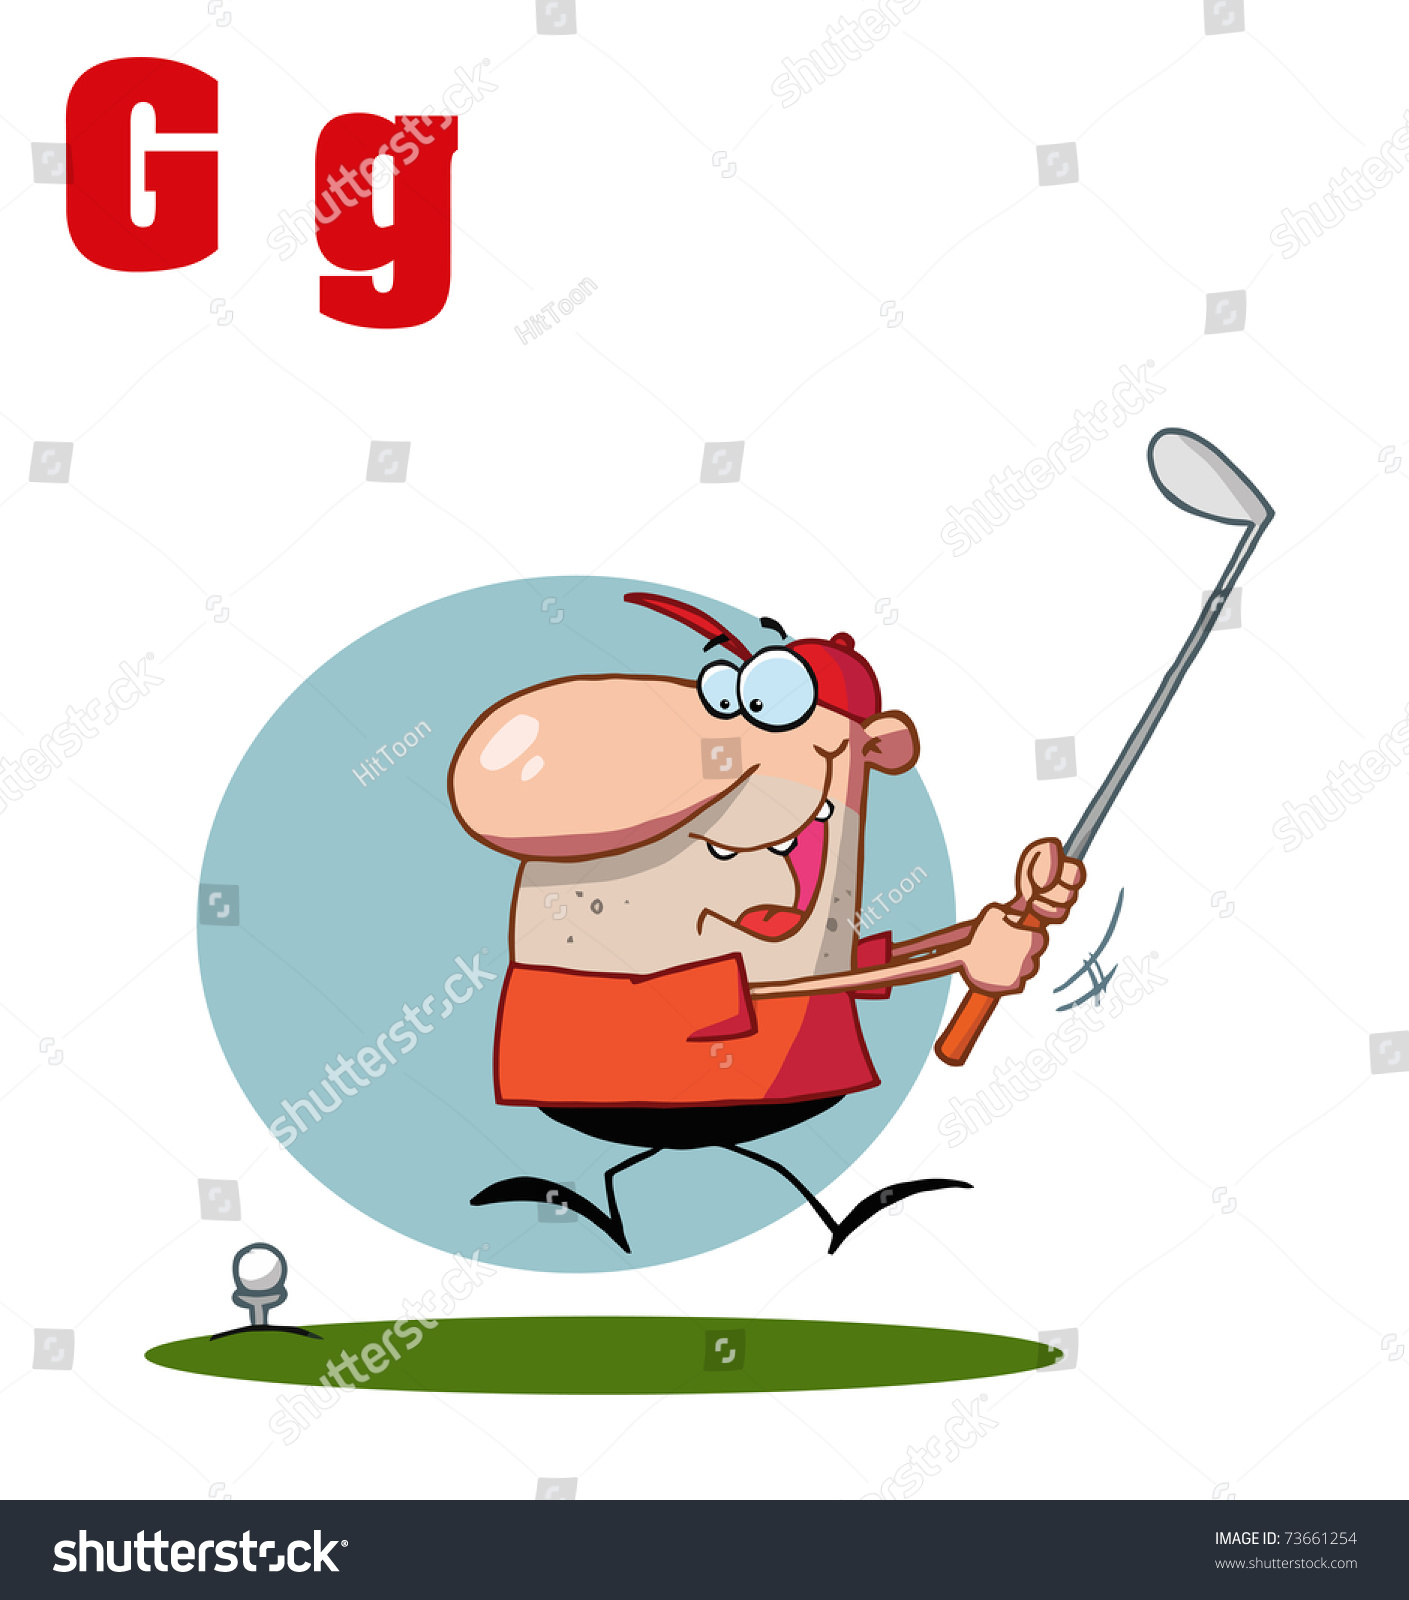 Funny Cartoons Alphabet-Male Golfer With Letters G